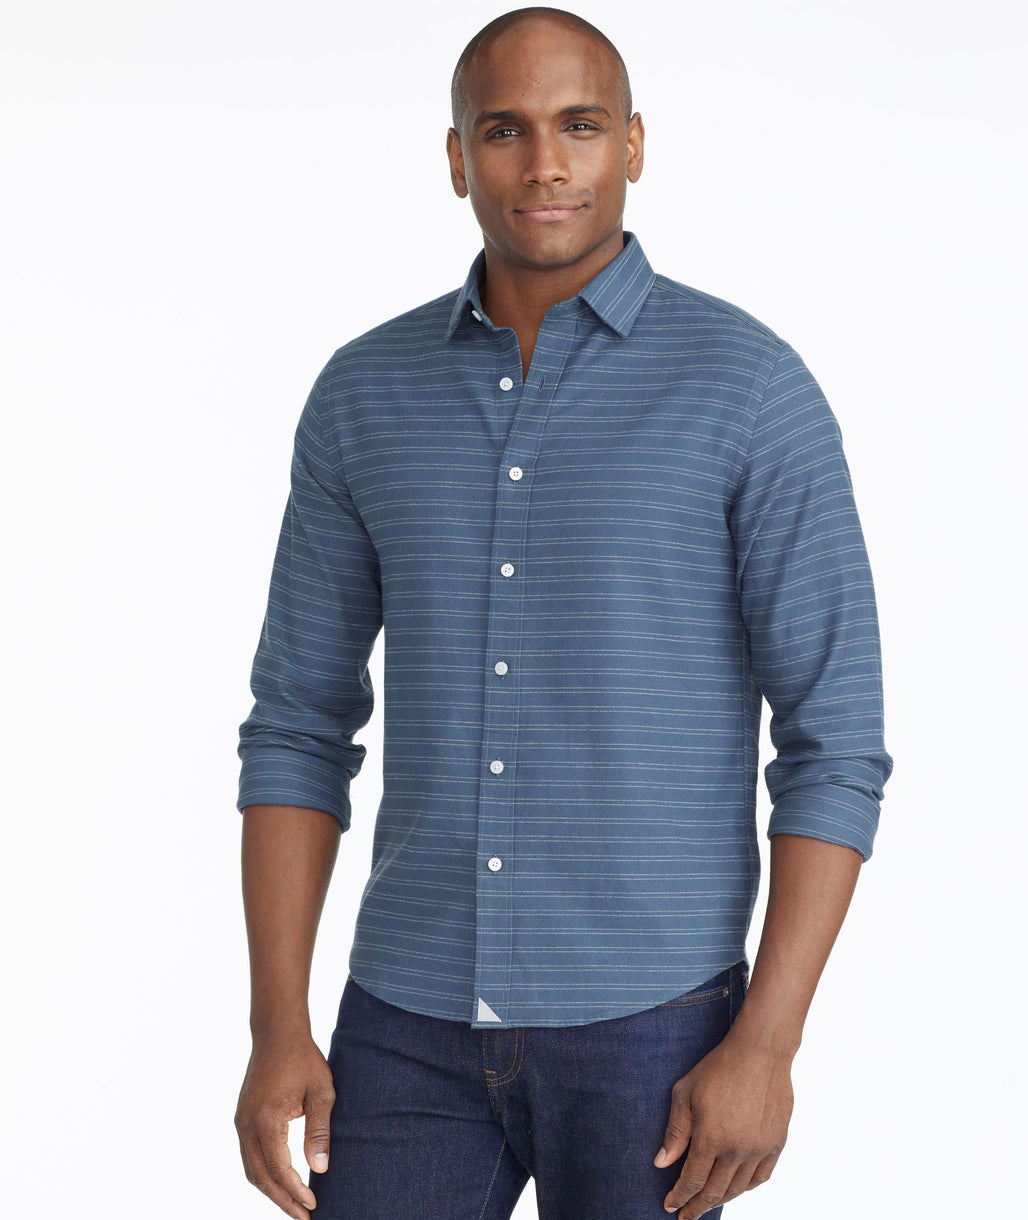 Model wearing a Teal Blue Classic Cotton Palmer Shirt